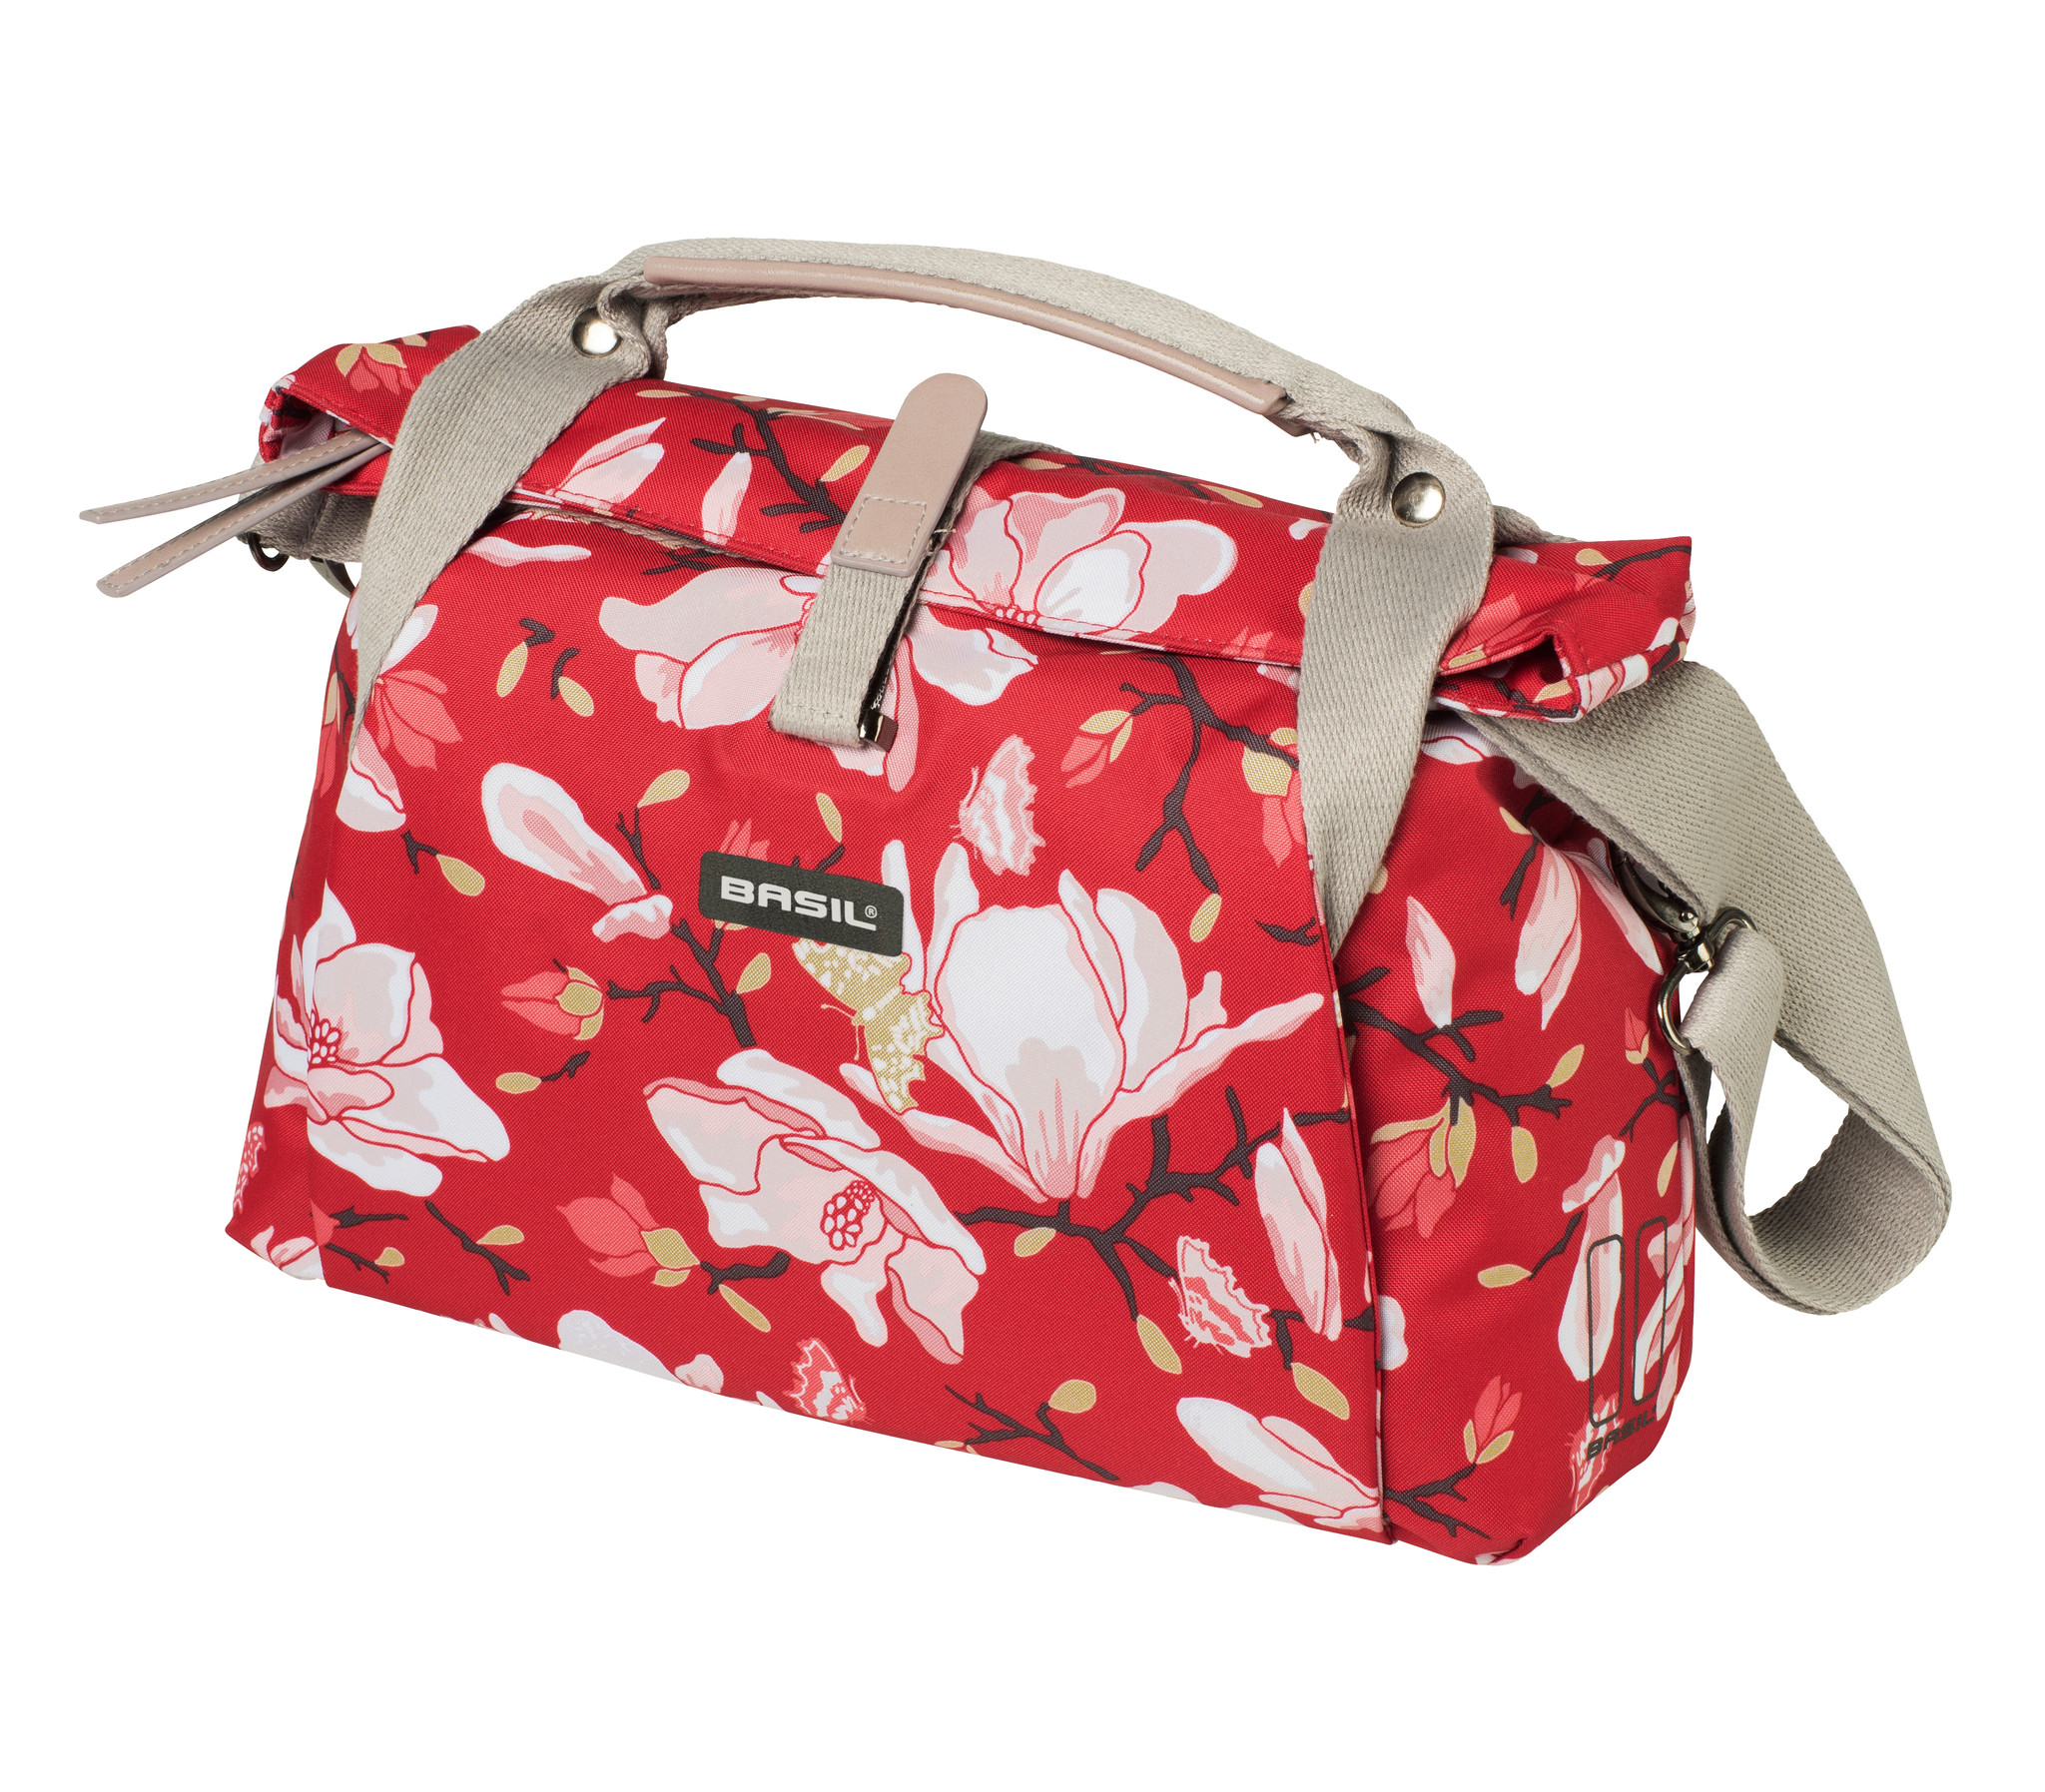 Sacoche Cintre Basil Magnolia City Bag Poppy Red